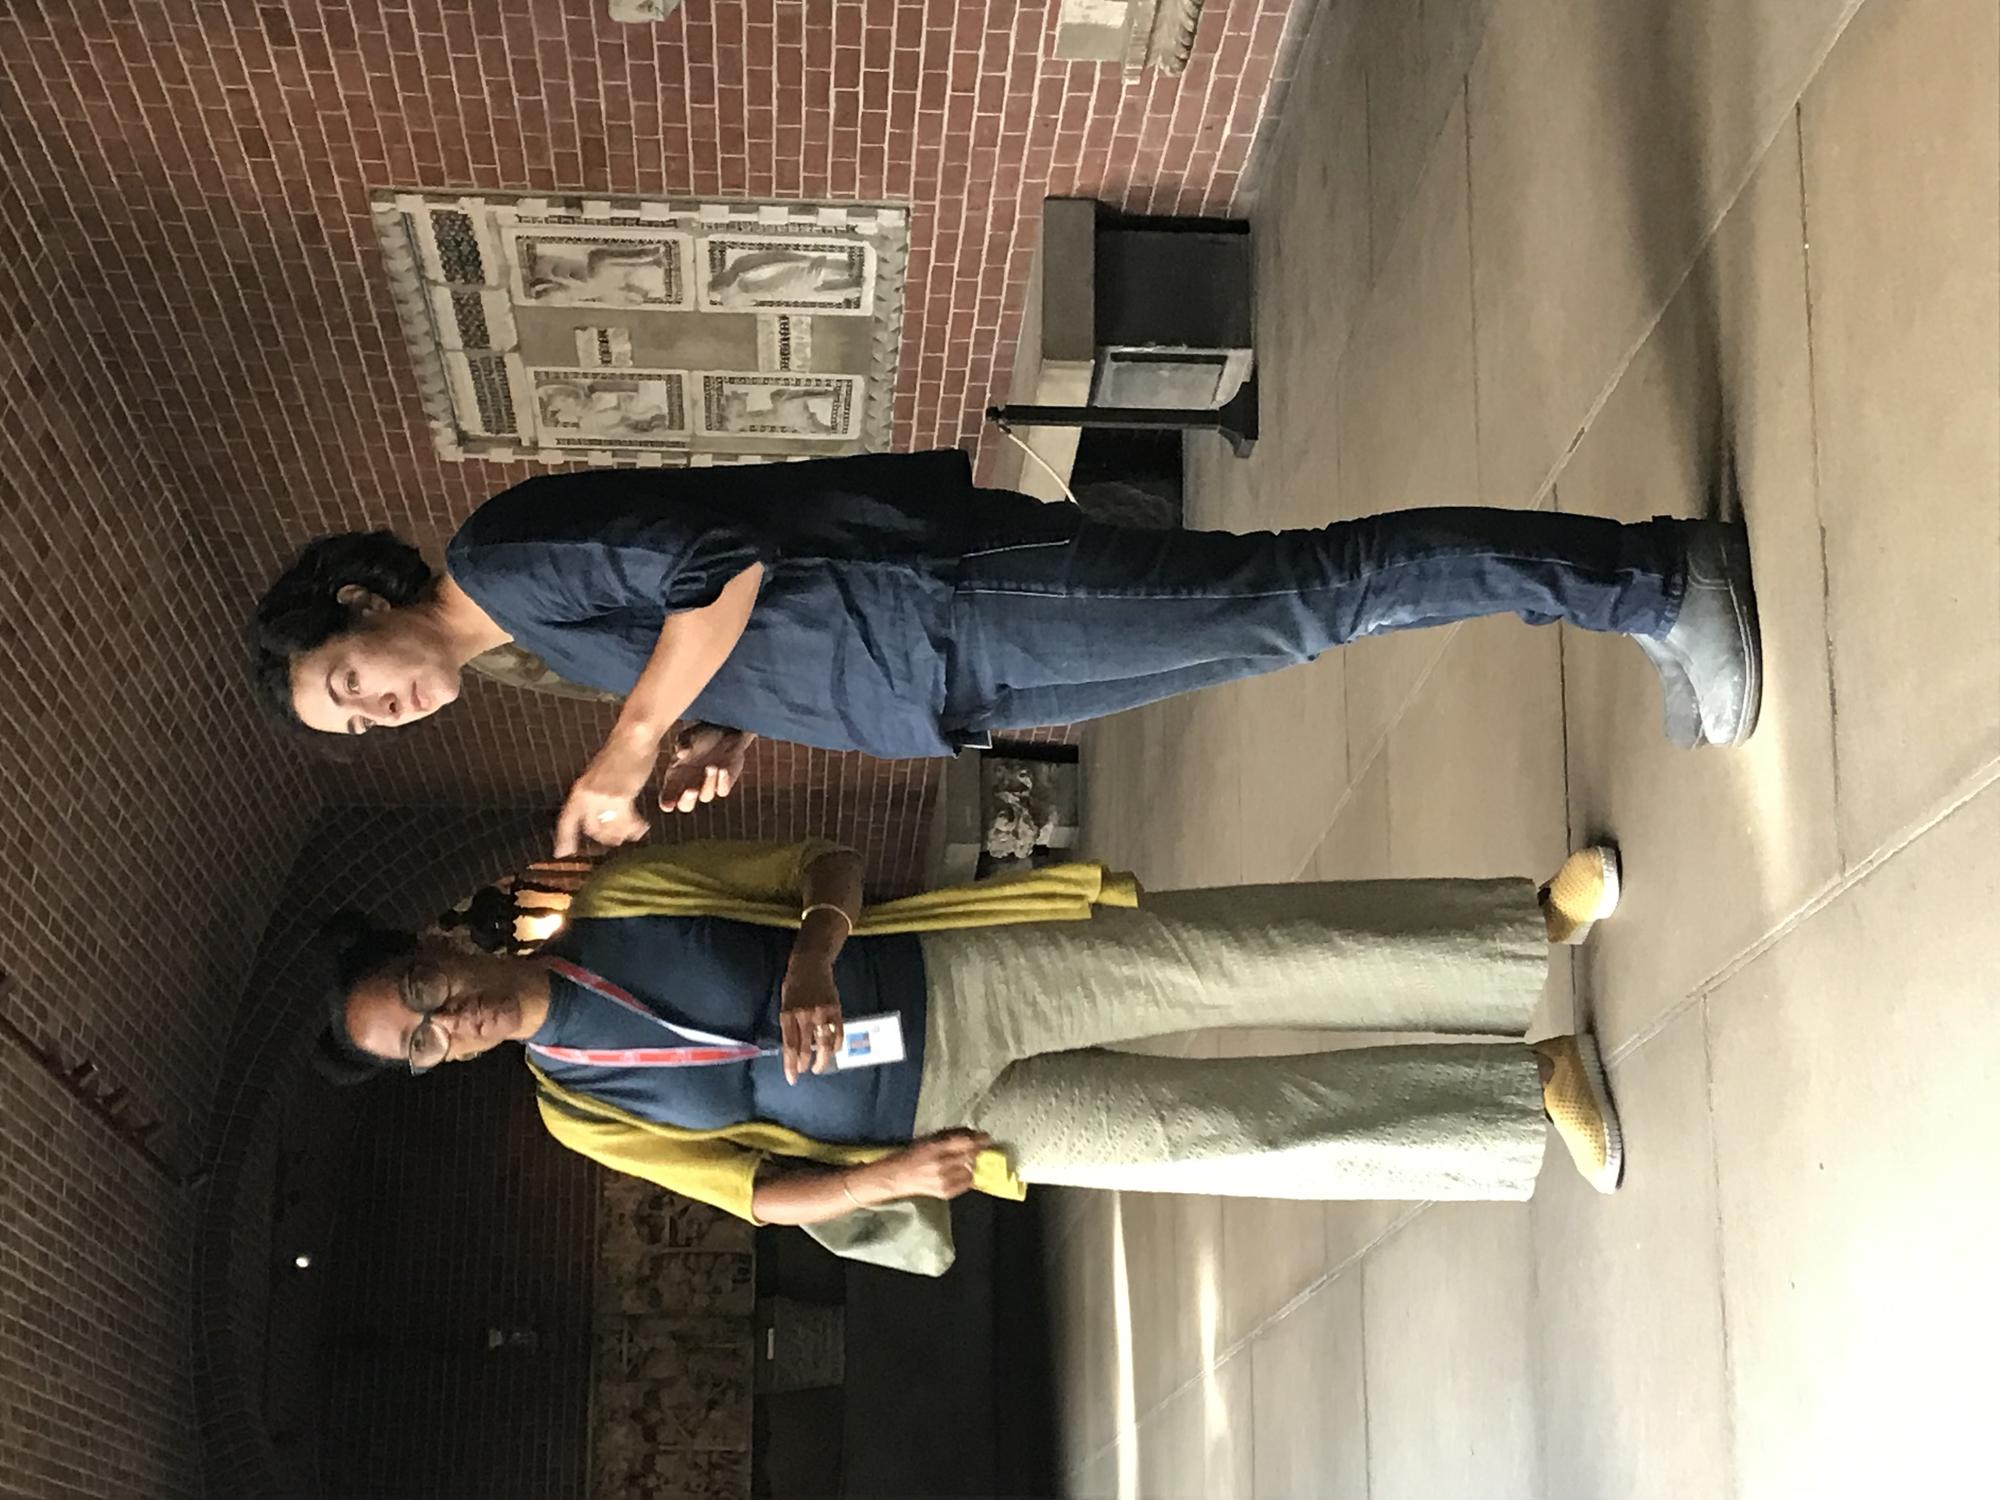 Sonya Clark and Erika Rumbley, Horticulturist at the Museum and Prison Horticulture Educator talk about plants in the Courtyard, 2019